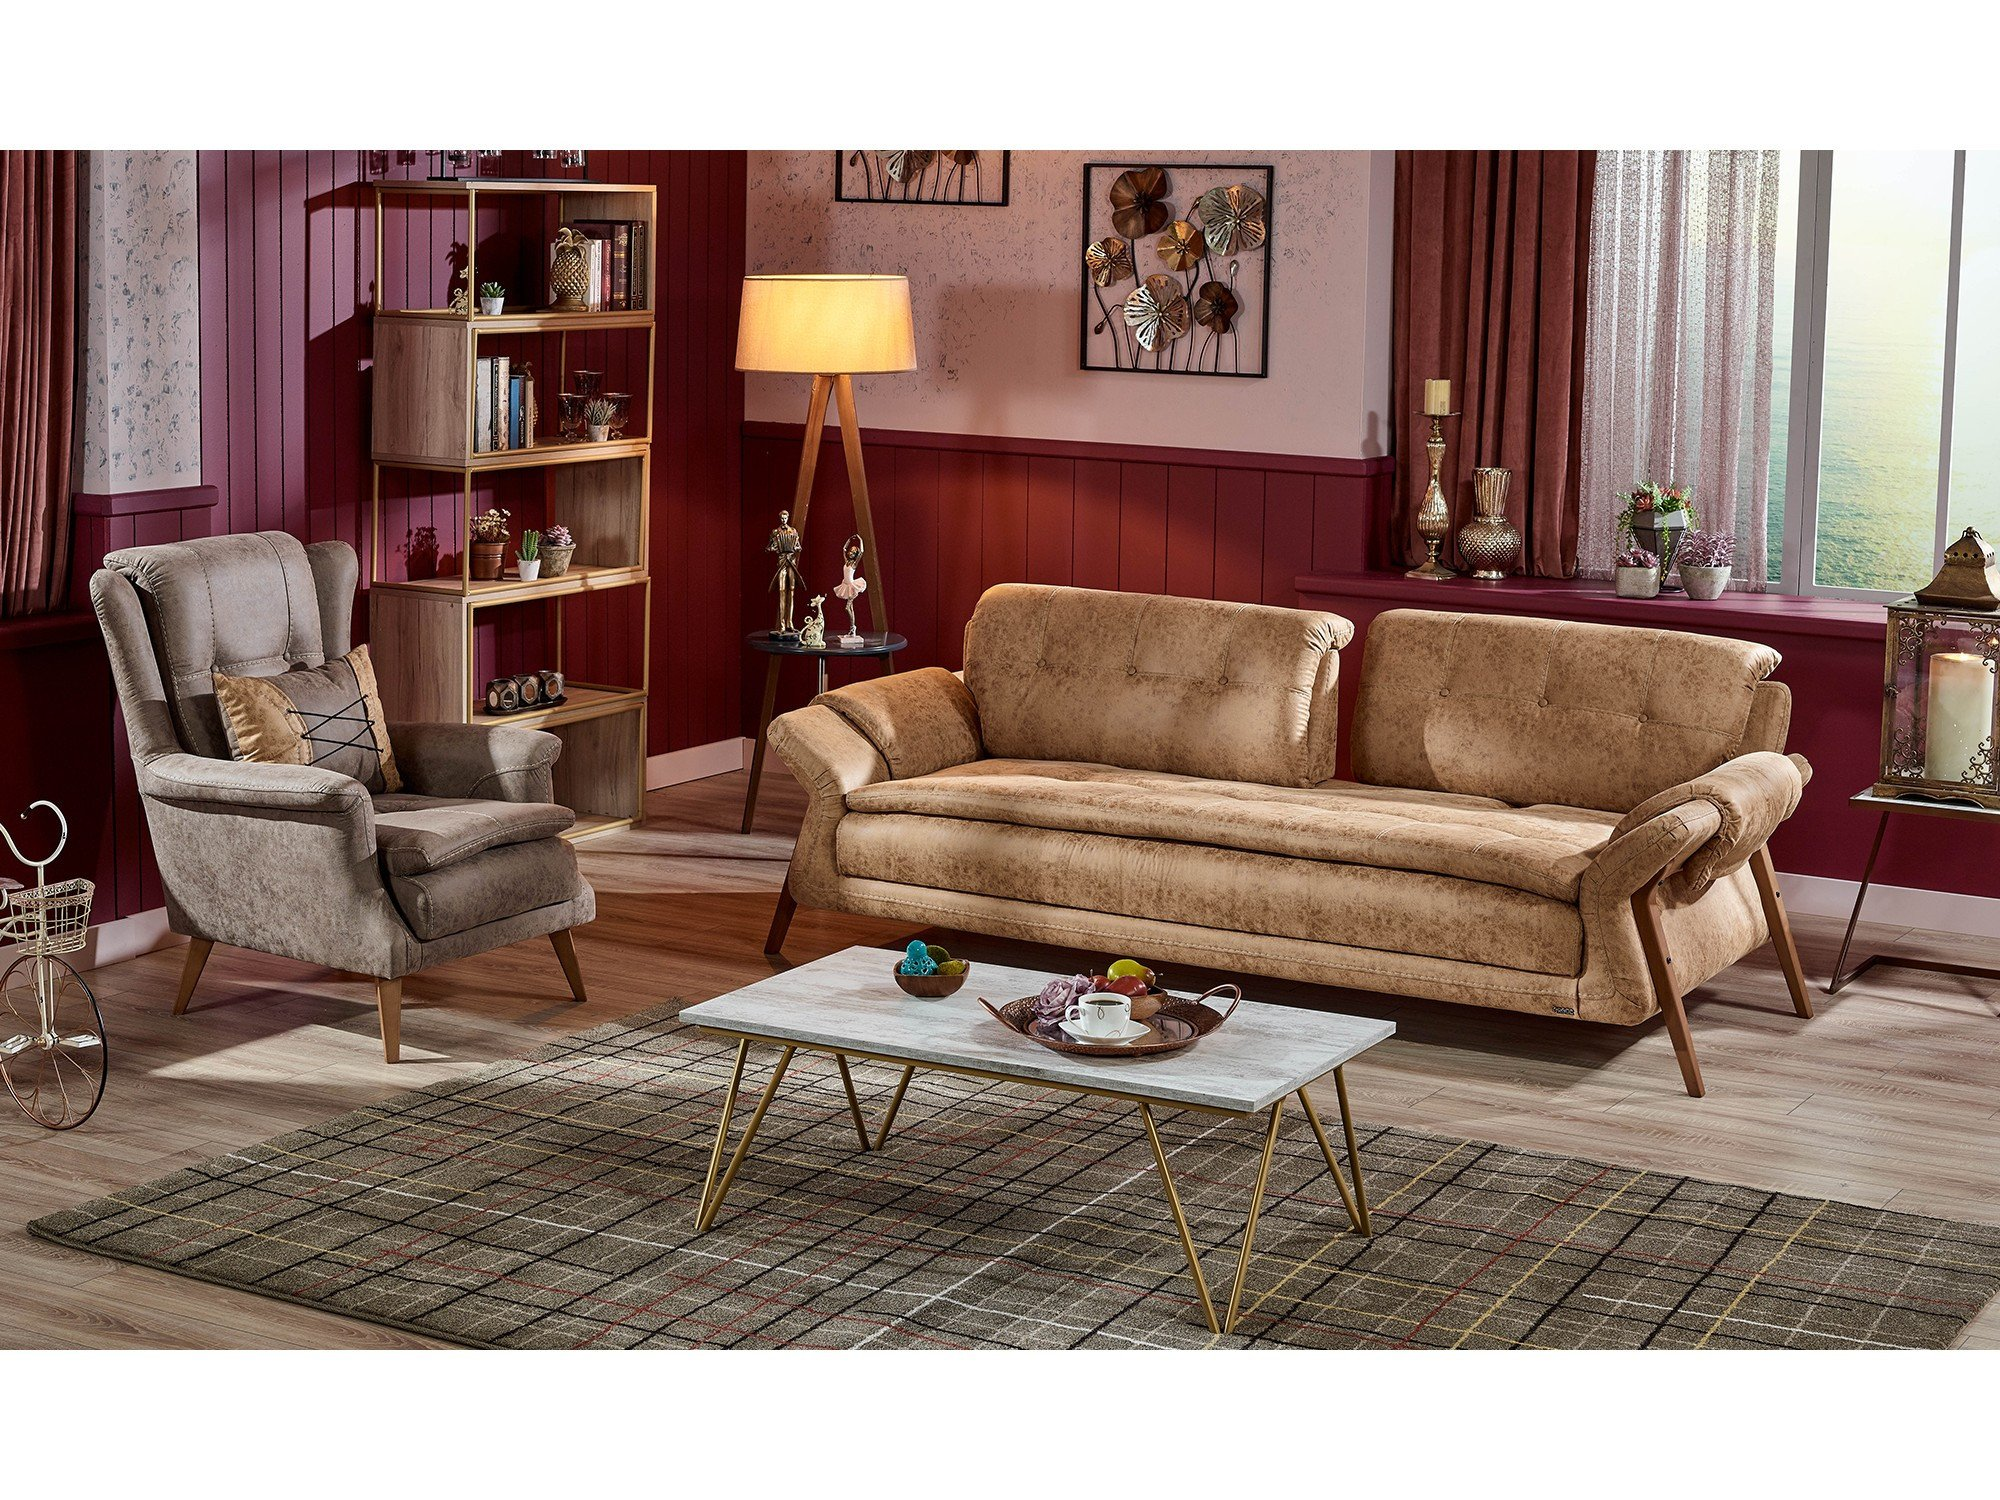 Bedroom Chairs for Sale Elegant Sale More Functional sofas Futons Moody